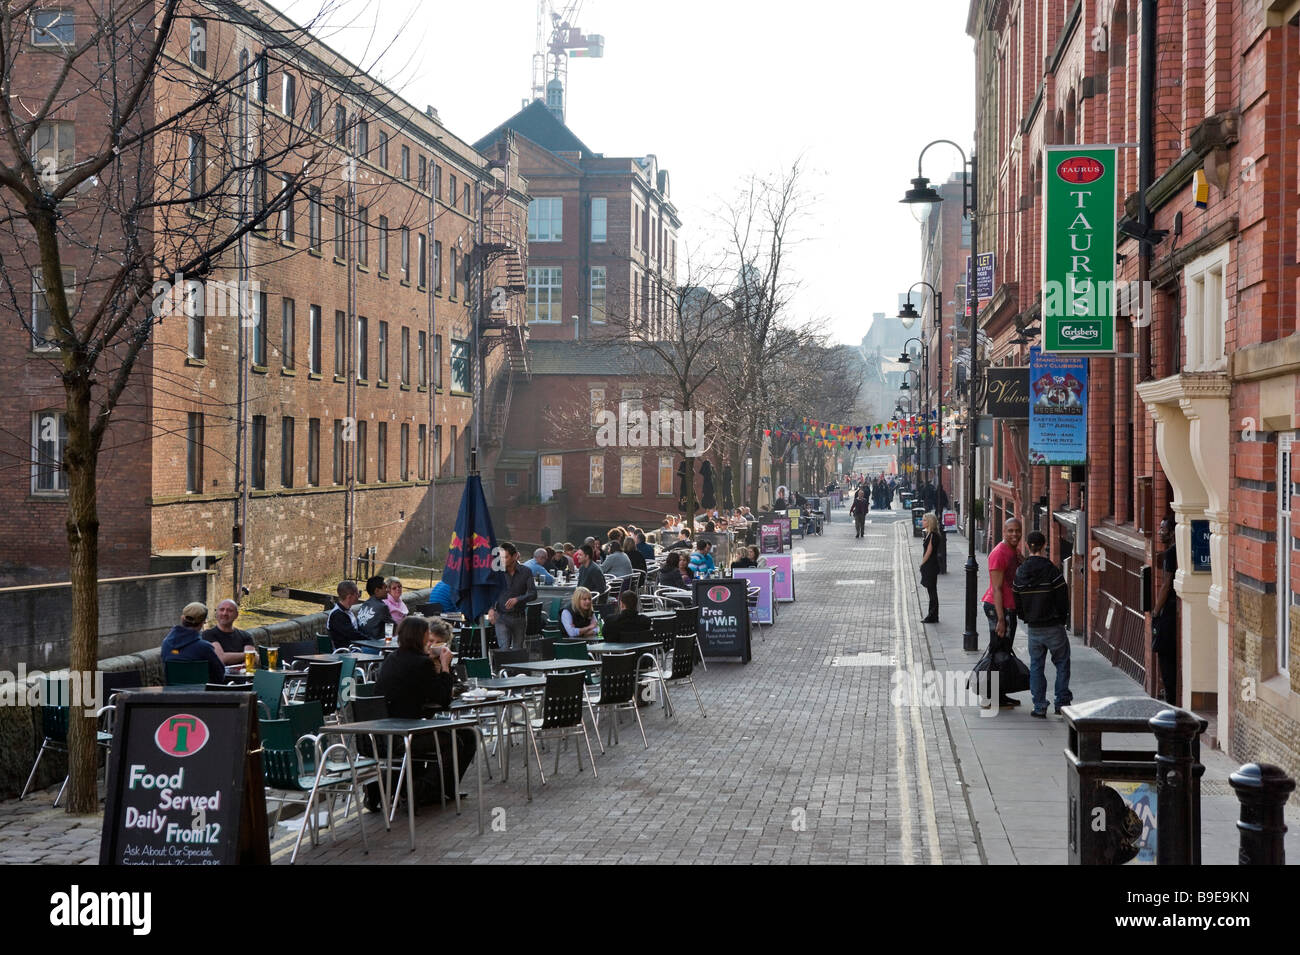 Pubs, Bars and Clubs along Canal Street in the Gay Village on a Friday evening, City Centre, Manchester, England - Stock Image